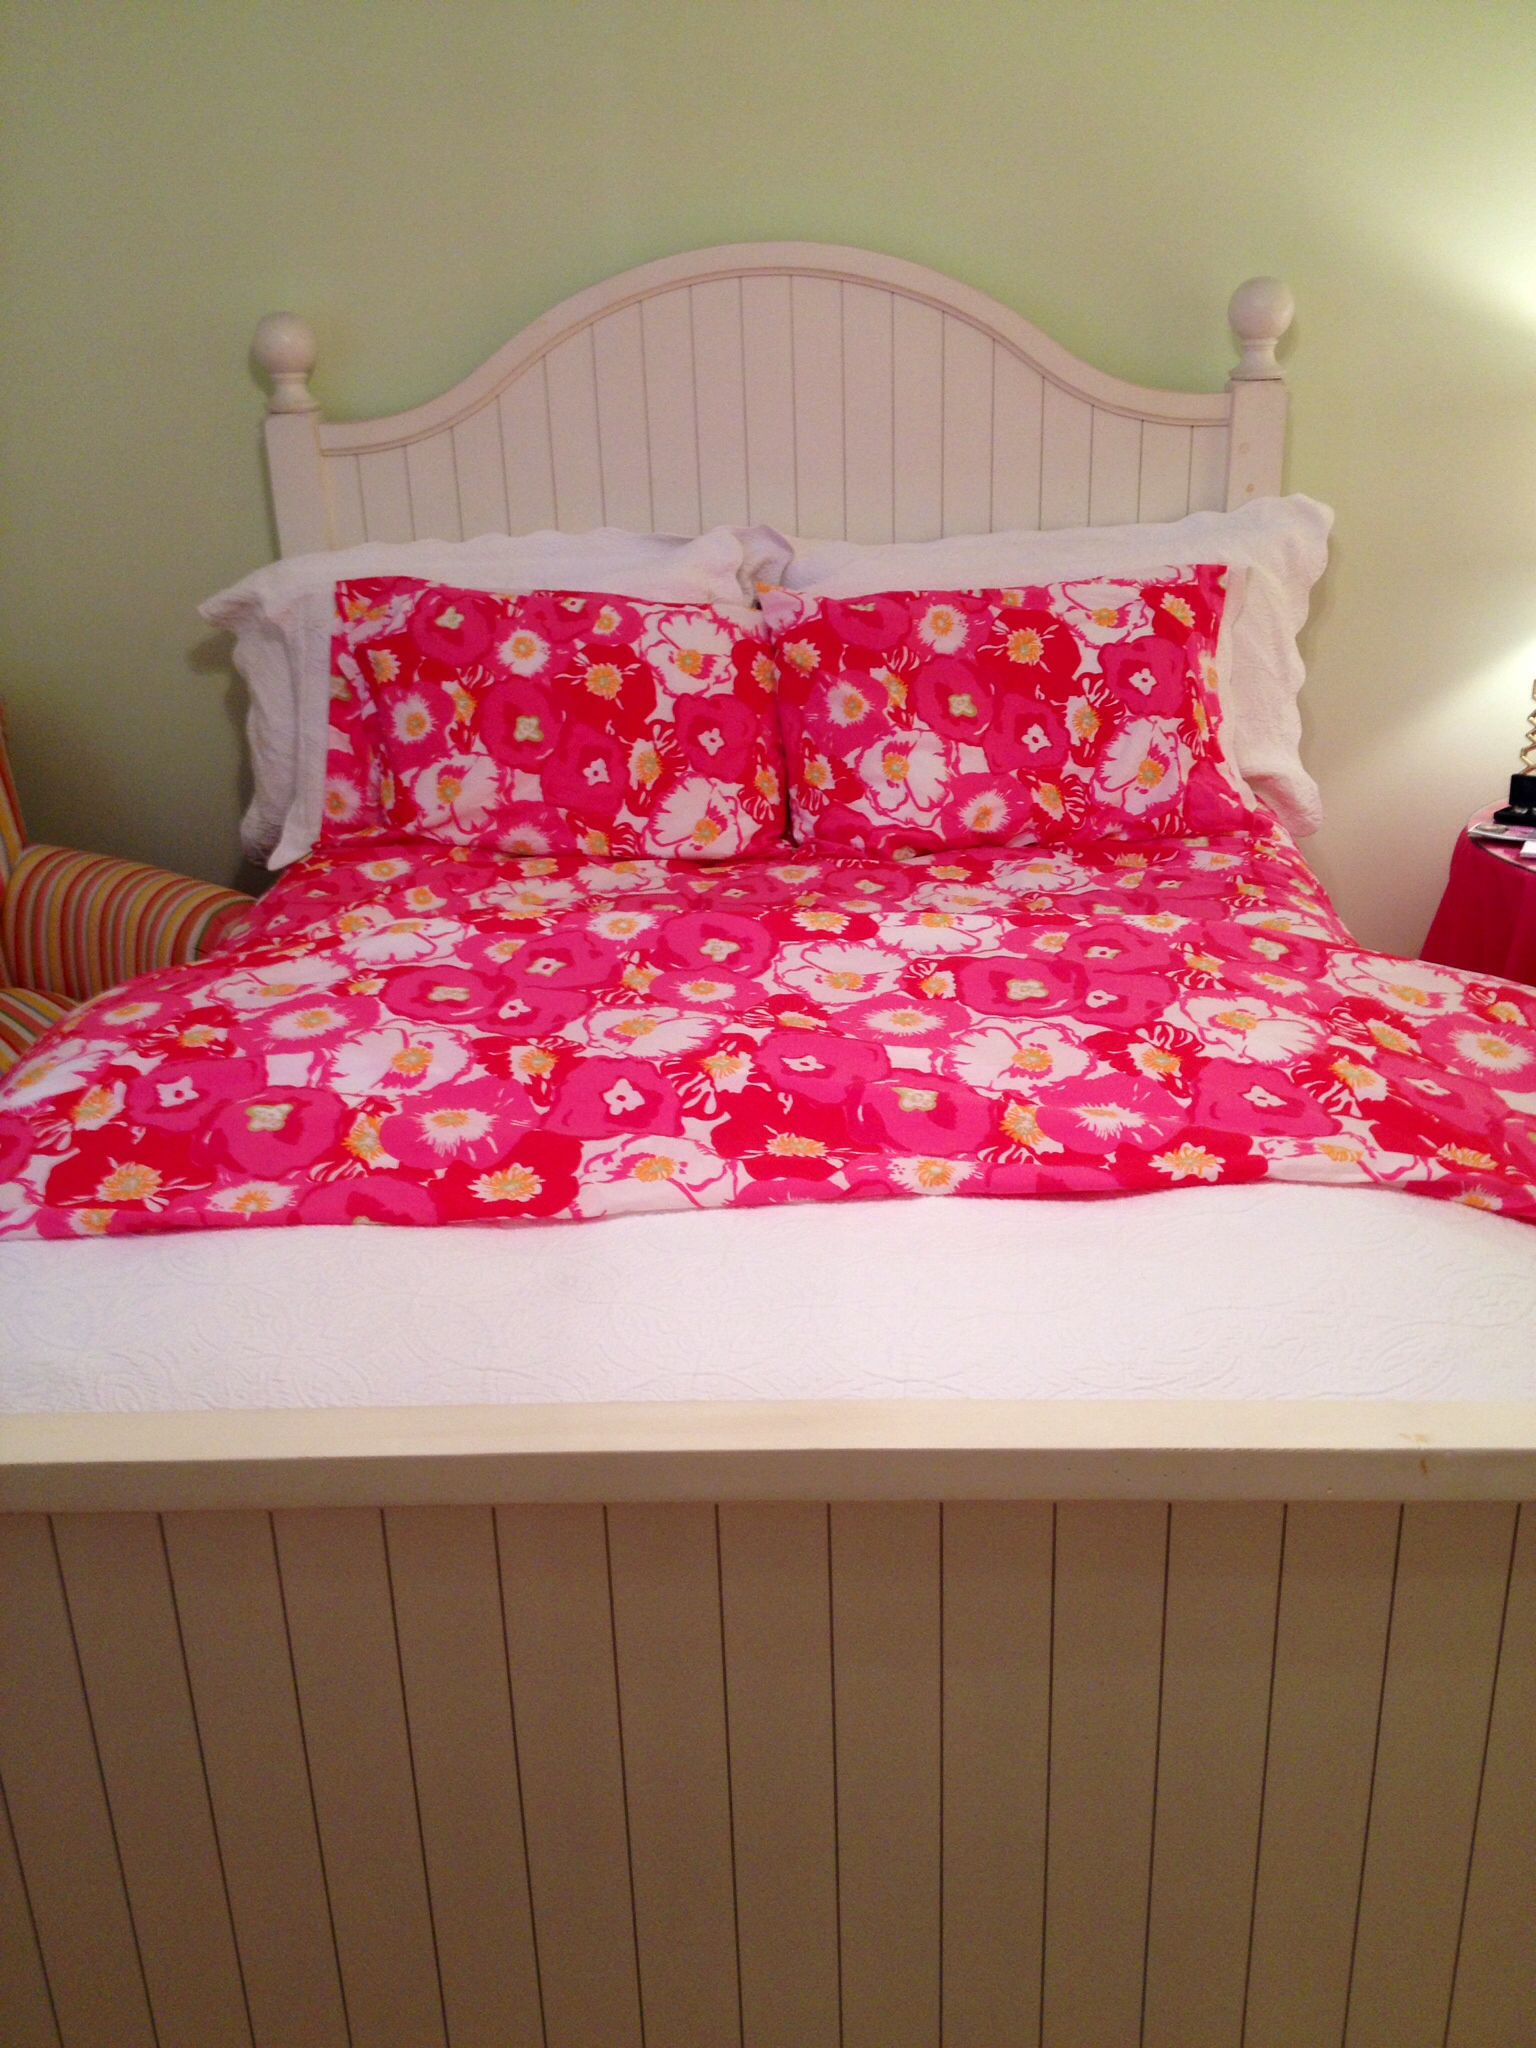 #LillyPulitzer #Home